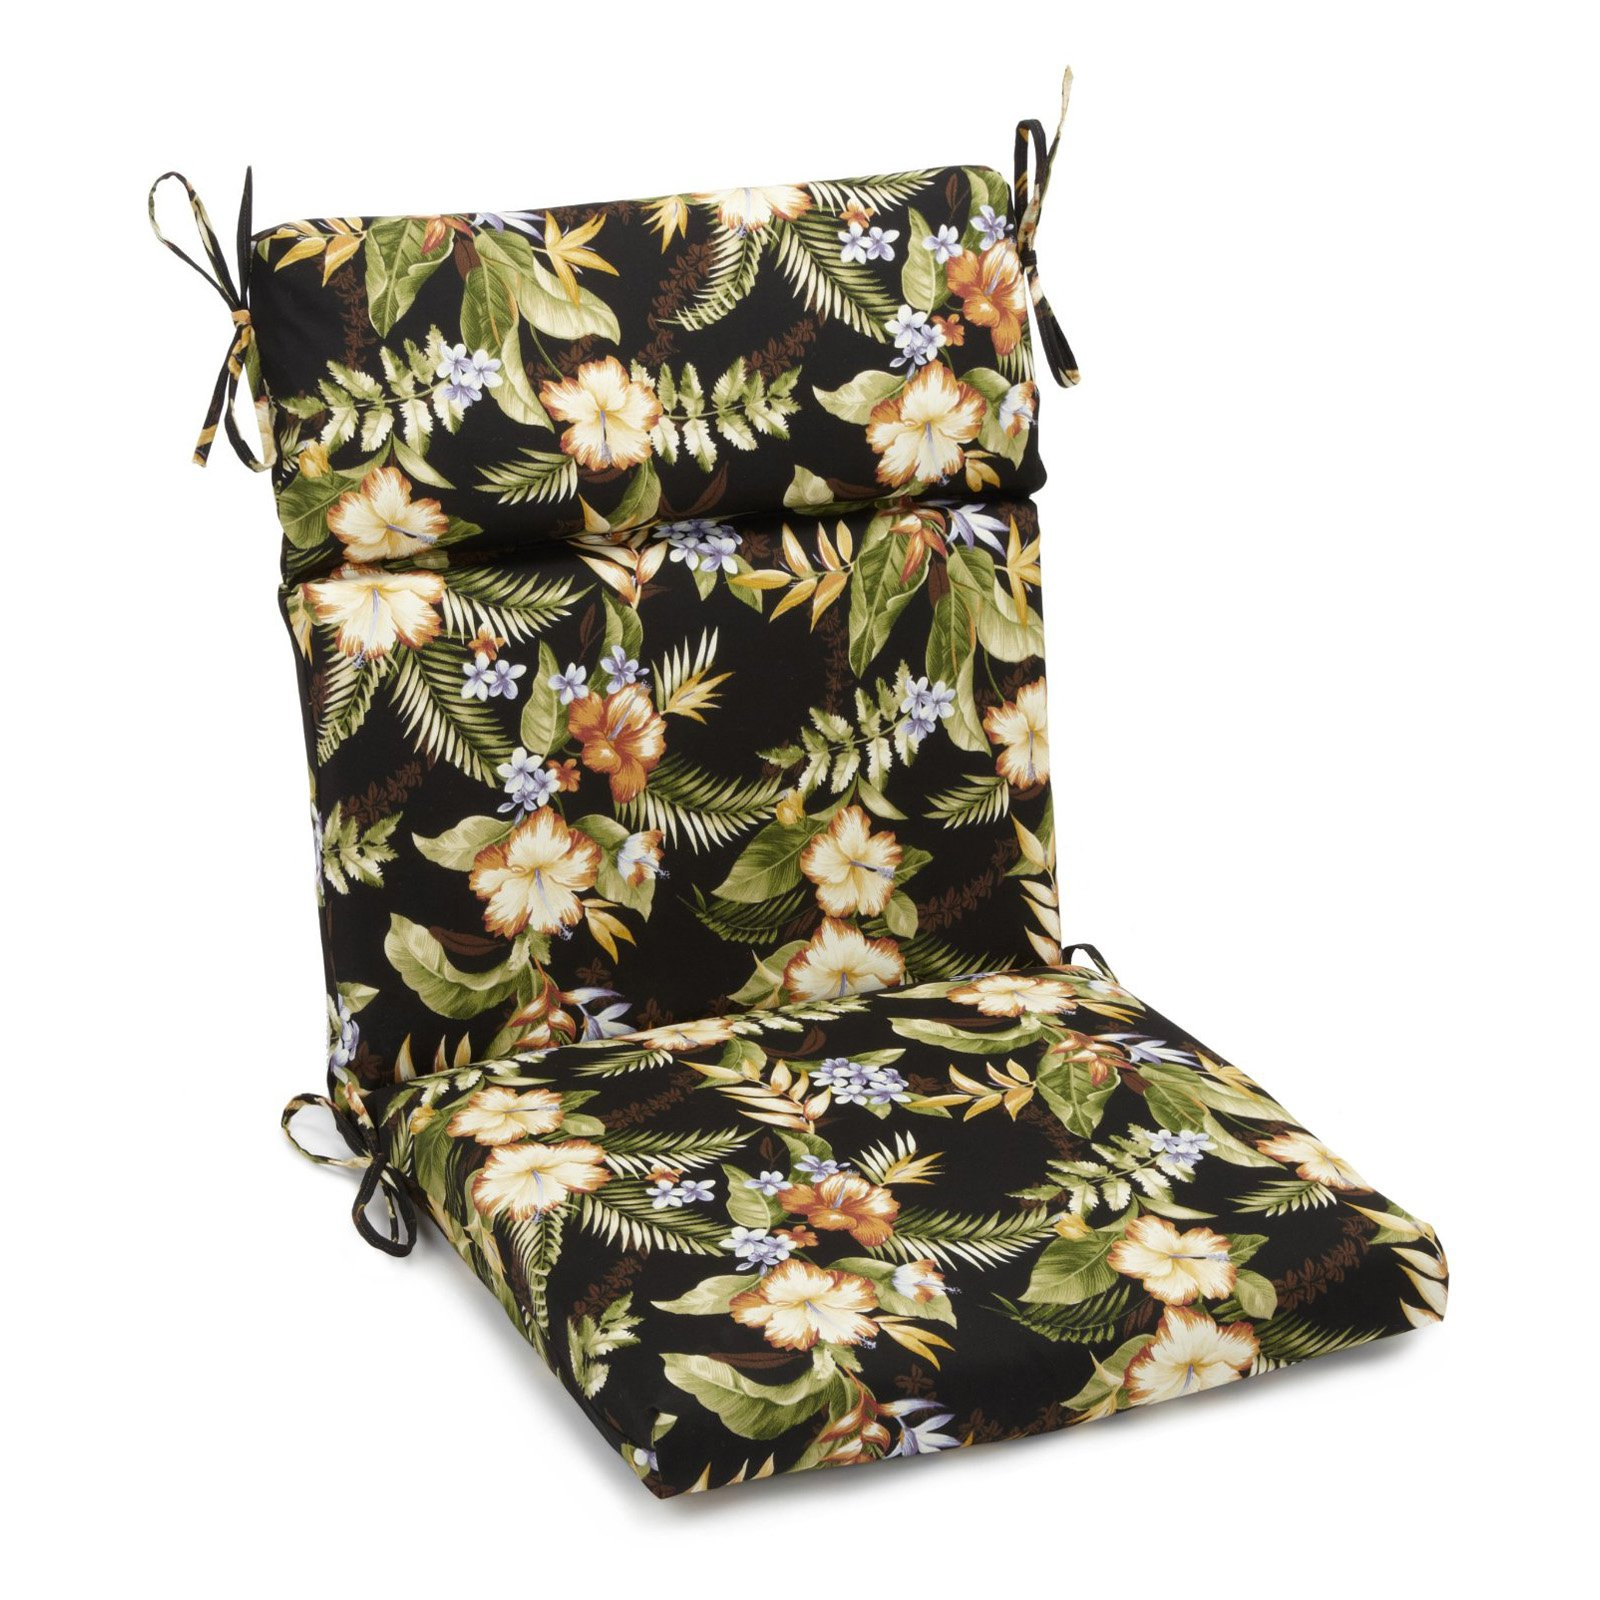 Blazing Needles Outdoor 3 Section 19 X 42 In. High Back Patio Chair Cushion    Walmart.com